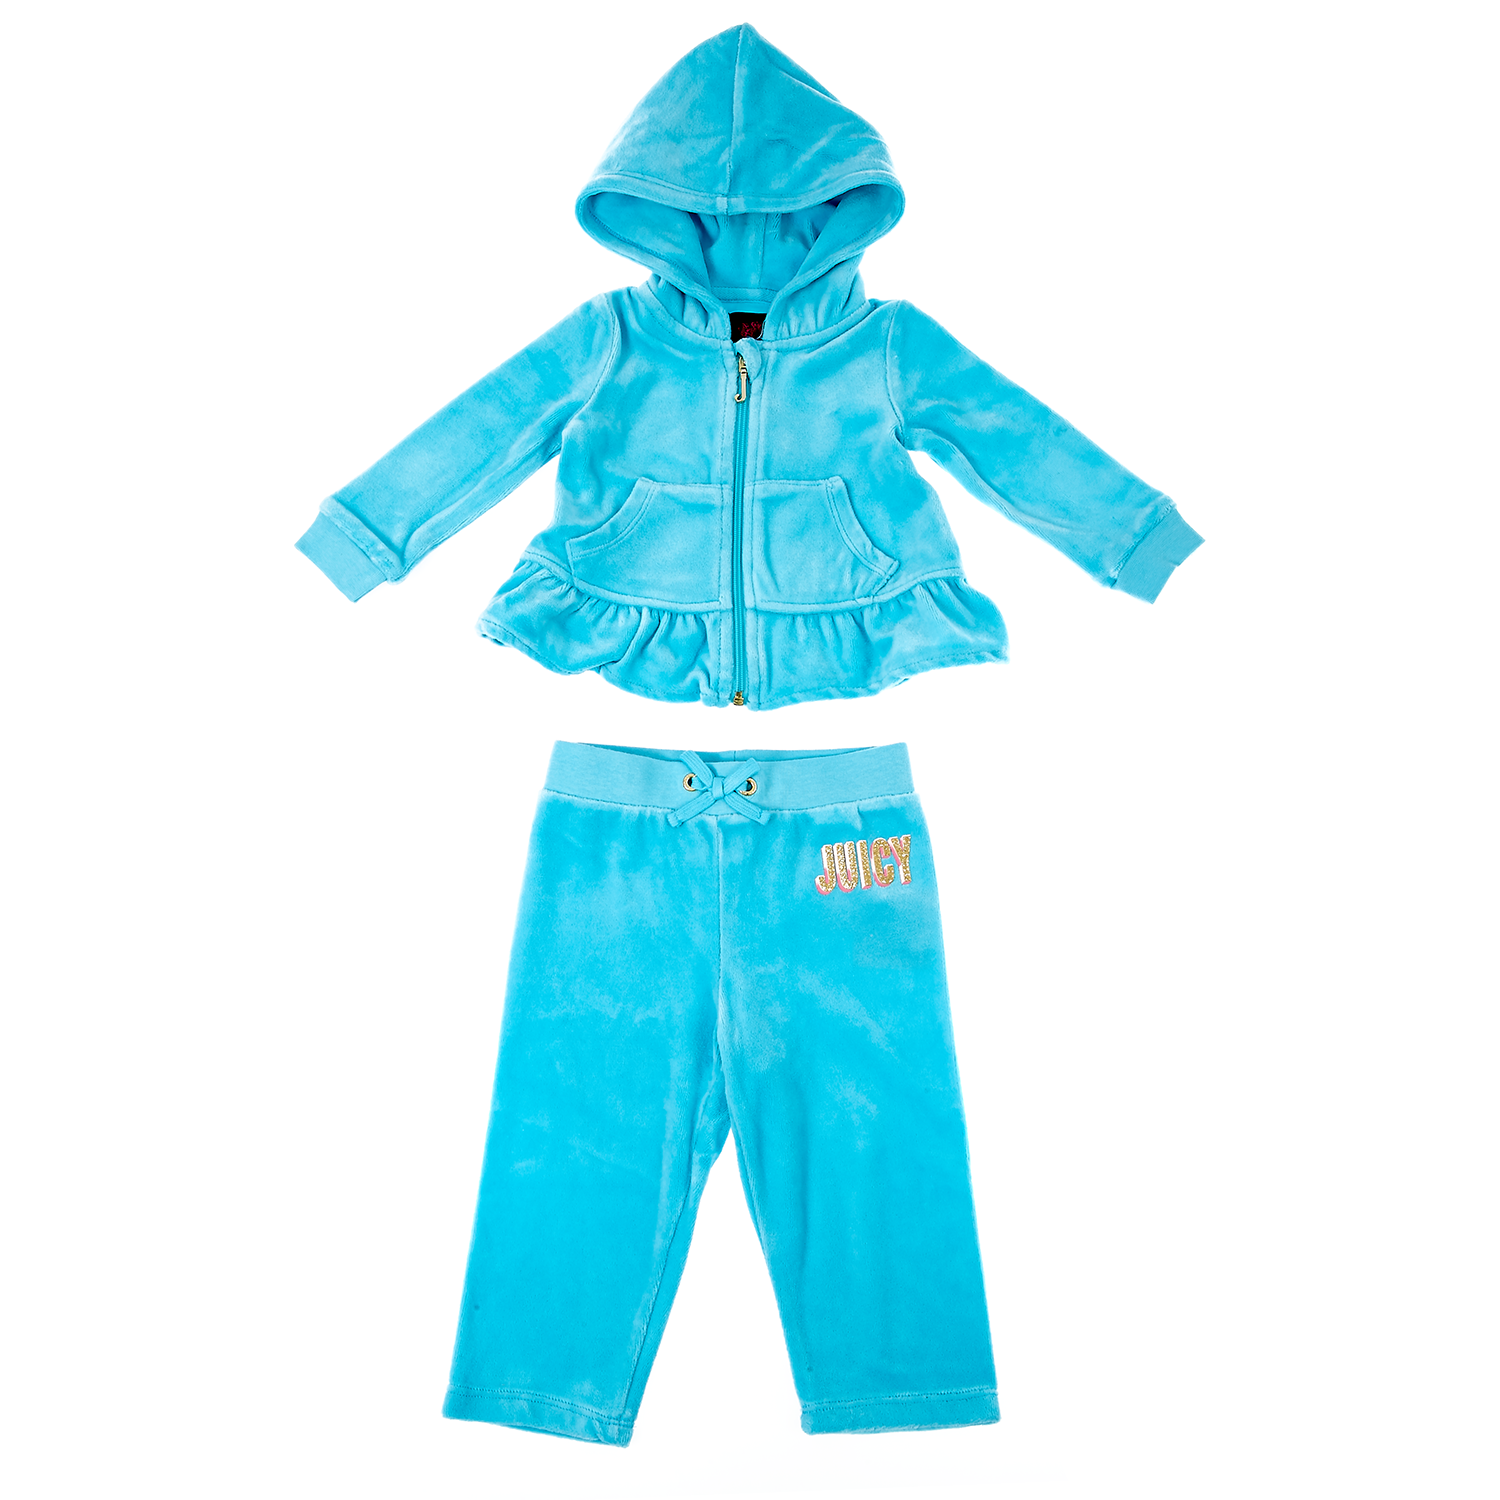 6a963f977948 JUICY COUTURE KIDS - Βρεφικό σετ Juicy Couture μπλε